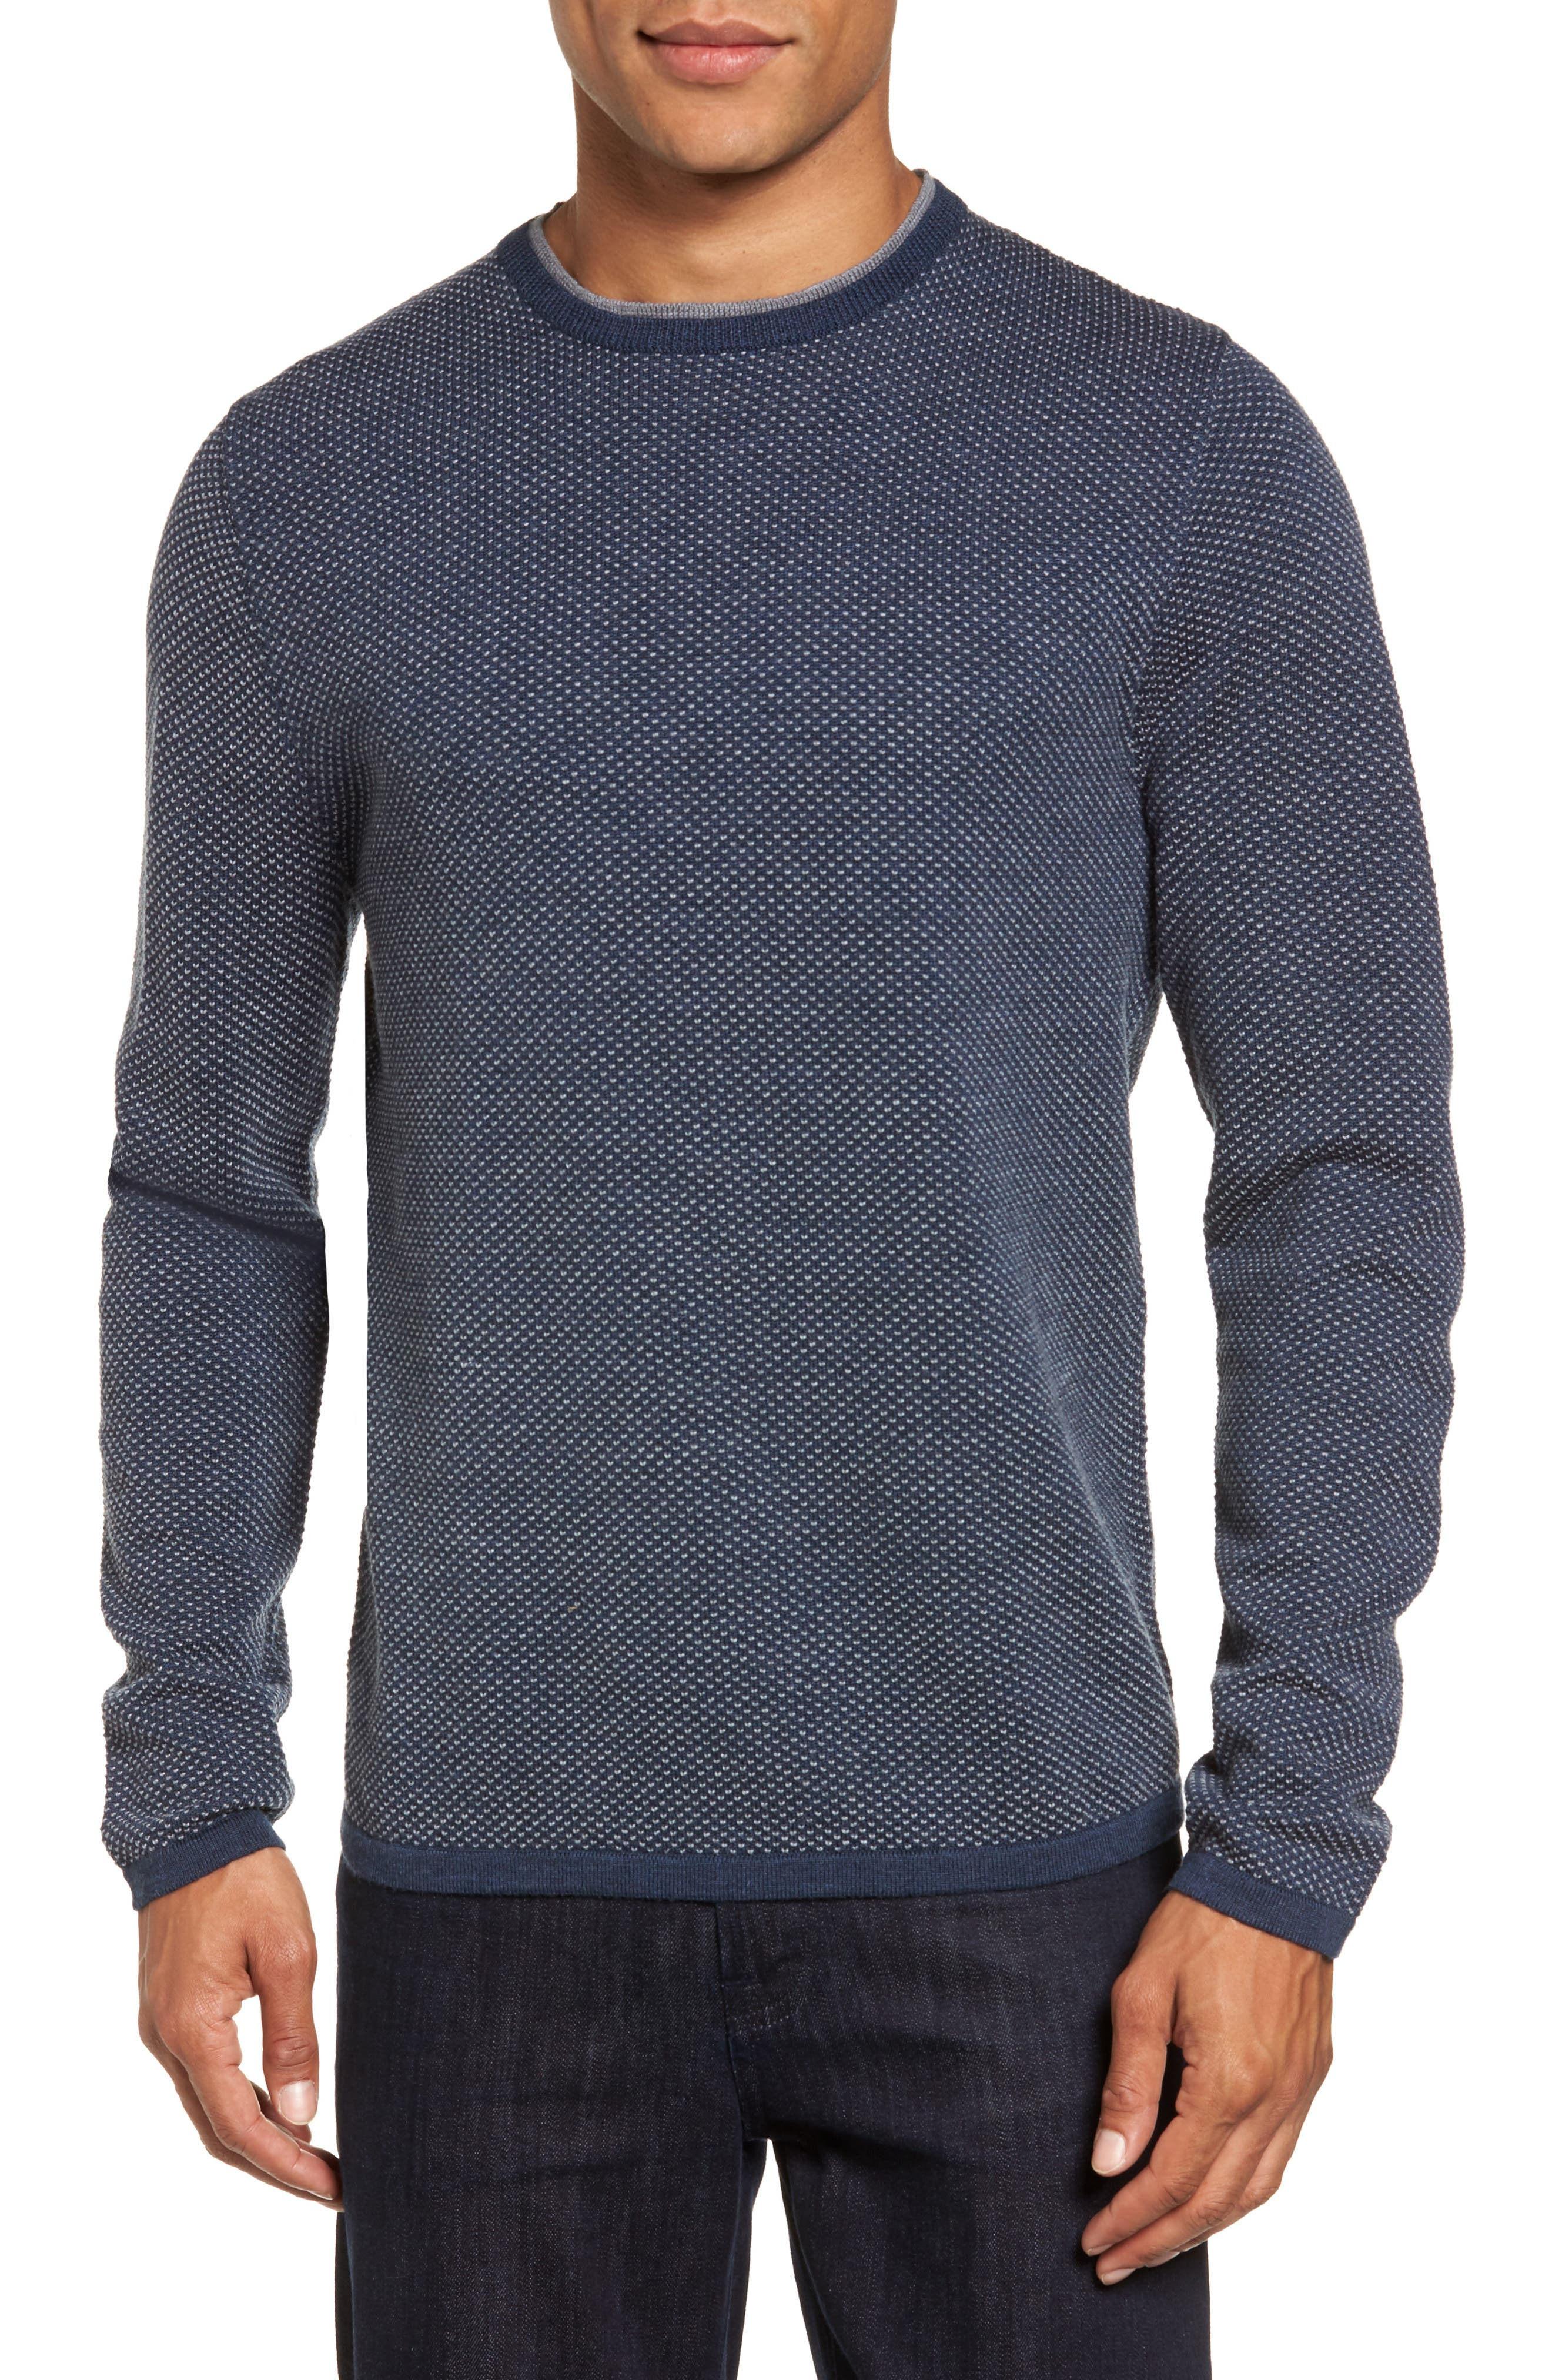 Nordstrom Men's Shop Textured Merino Wool Sweater